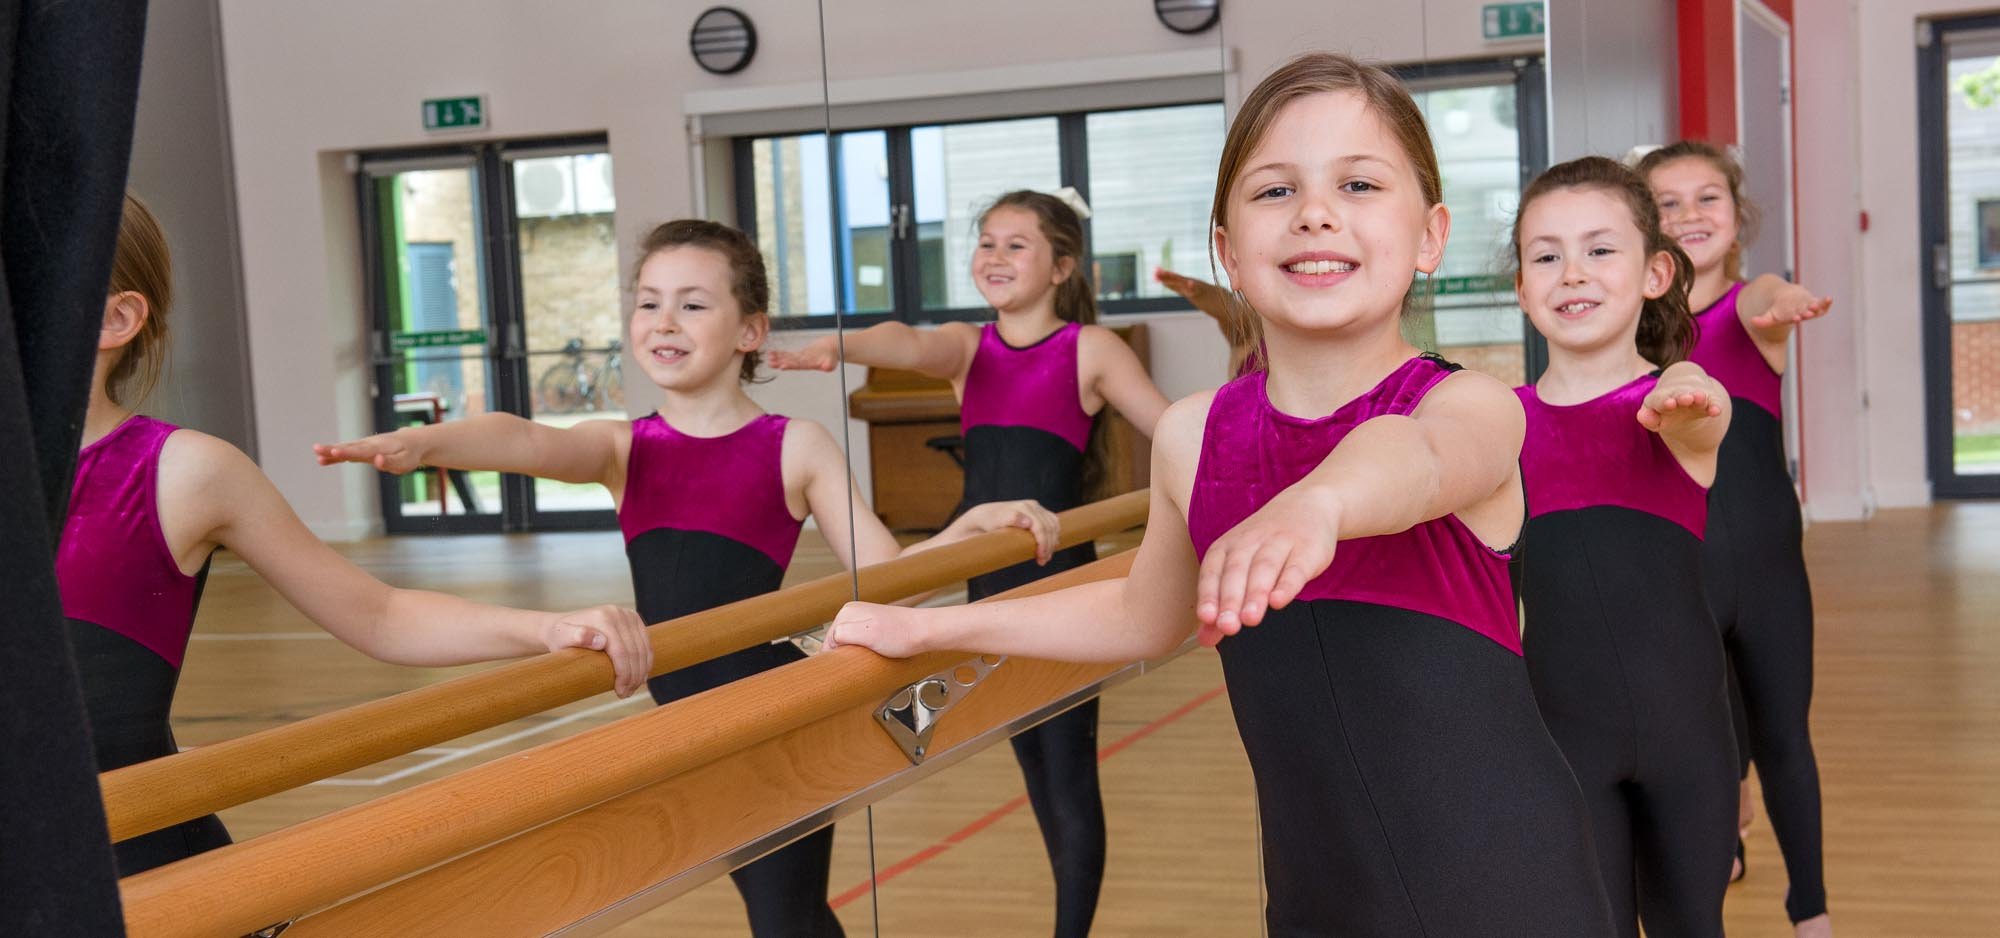 Girls performing ballet exercise